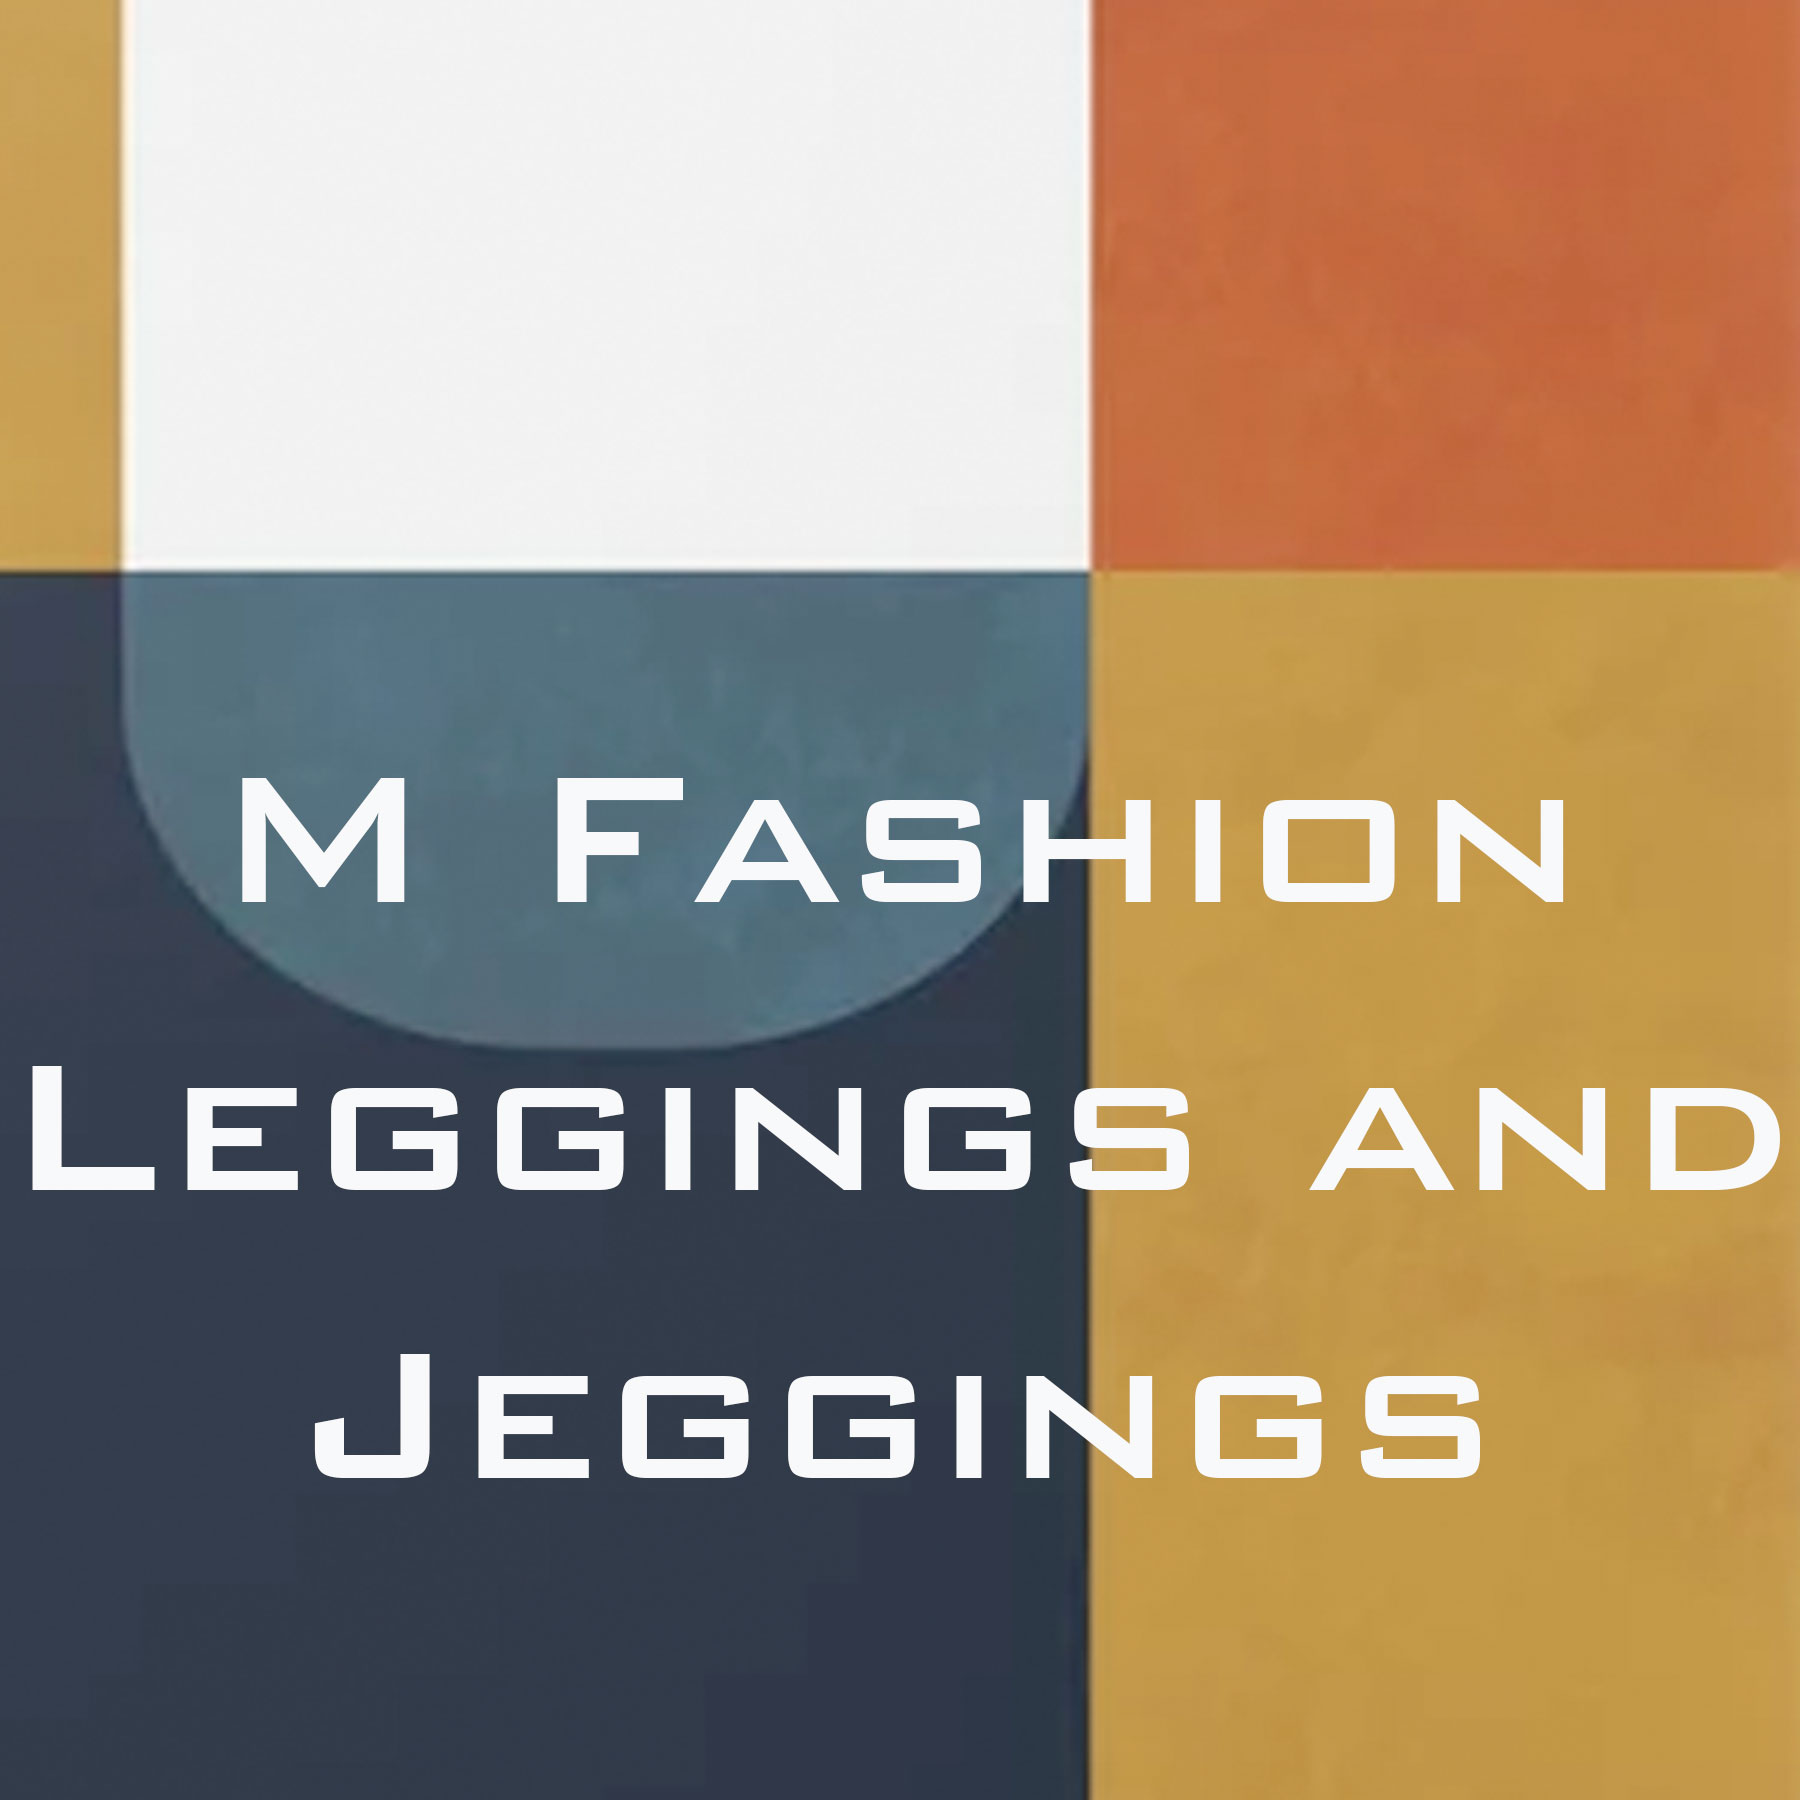 Wholesale M Fashion Leggings and Jeggings